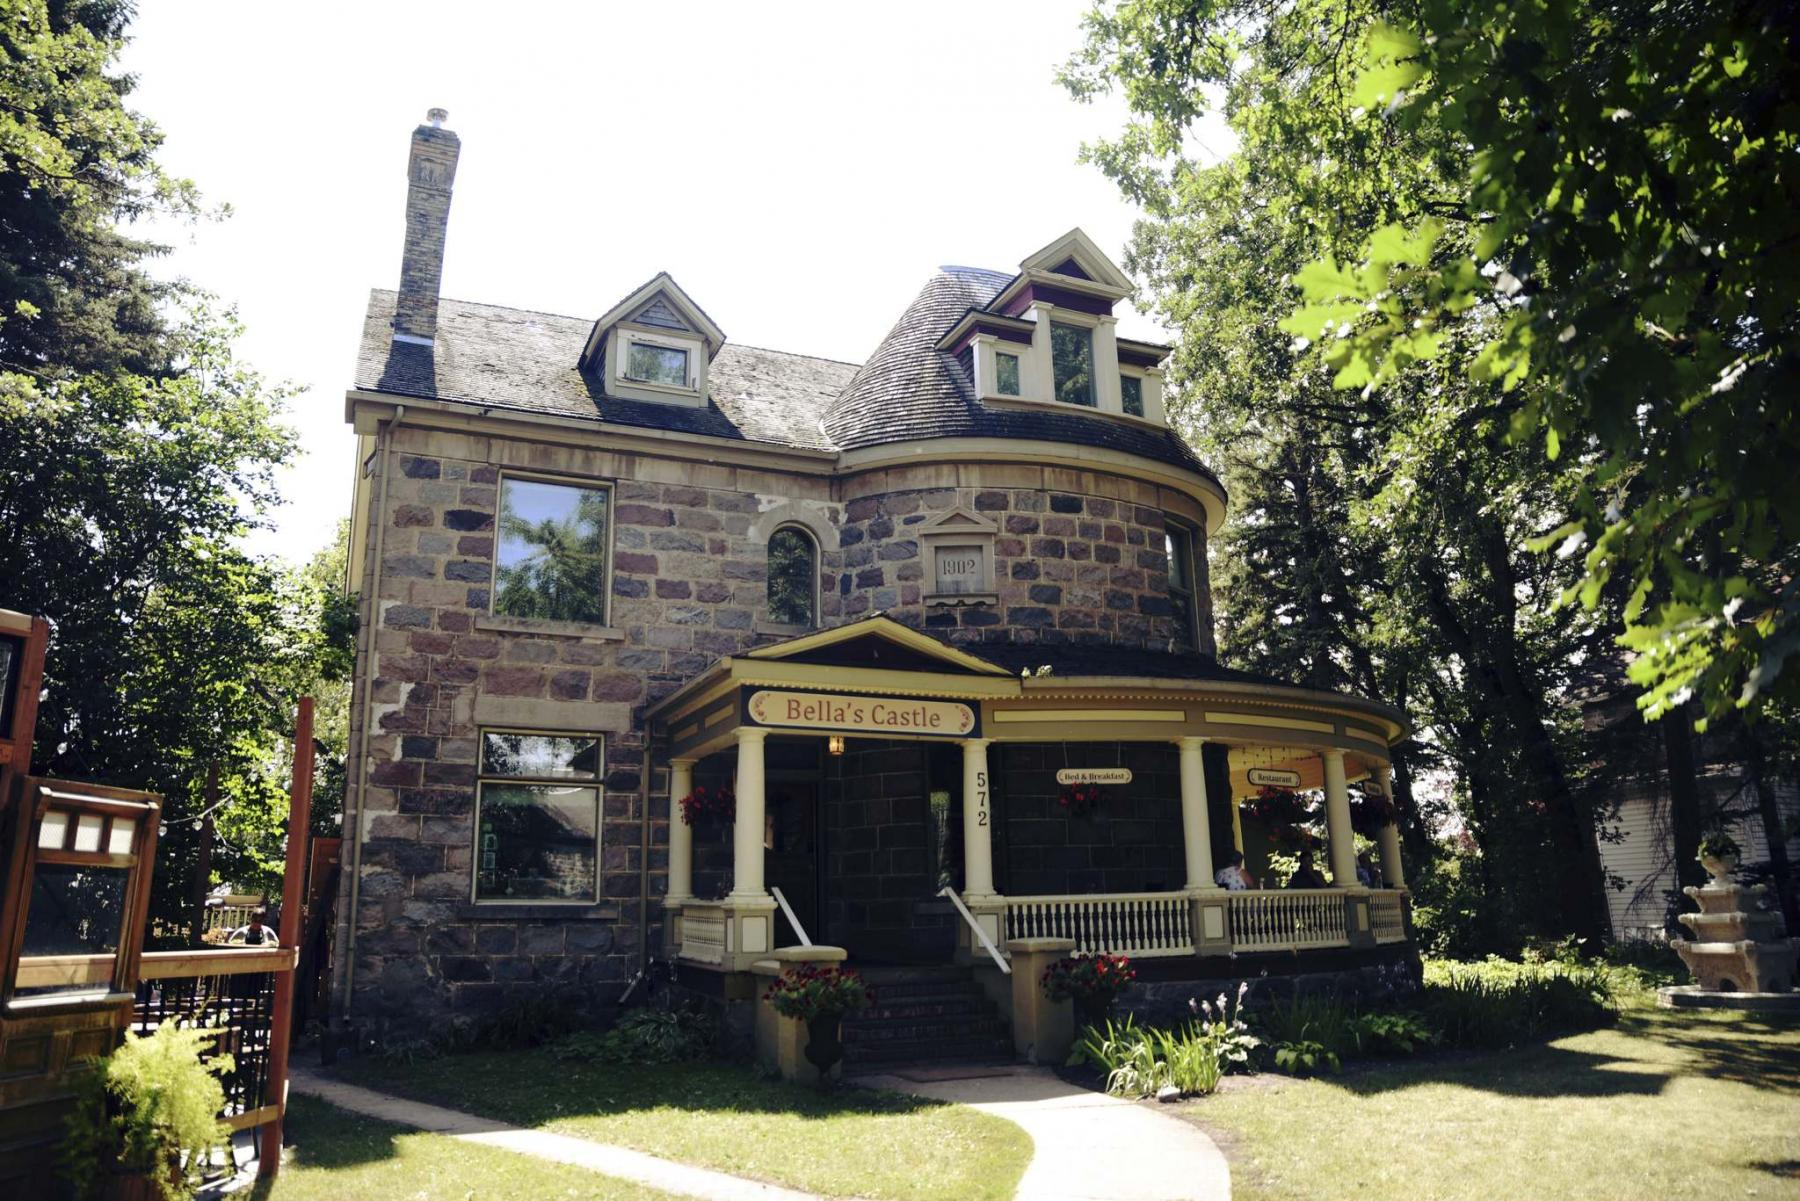 <p>Supplied </p><p>Bella's Castle is a vintage home in Morden that's being used as a hospitality, wedding and catering business, but owner Lily Krushel is selling it to spend more time with her family.</p>